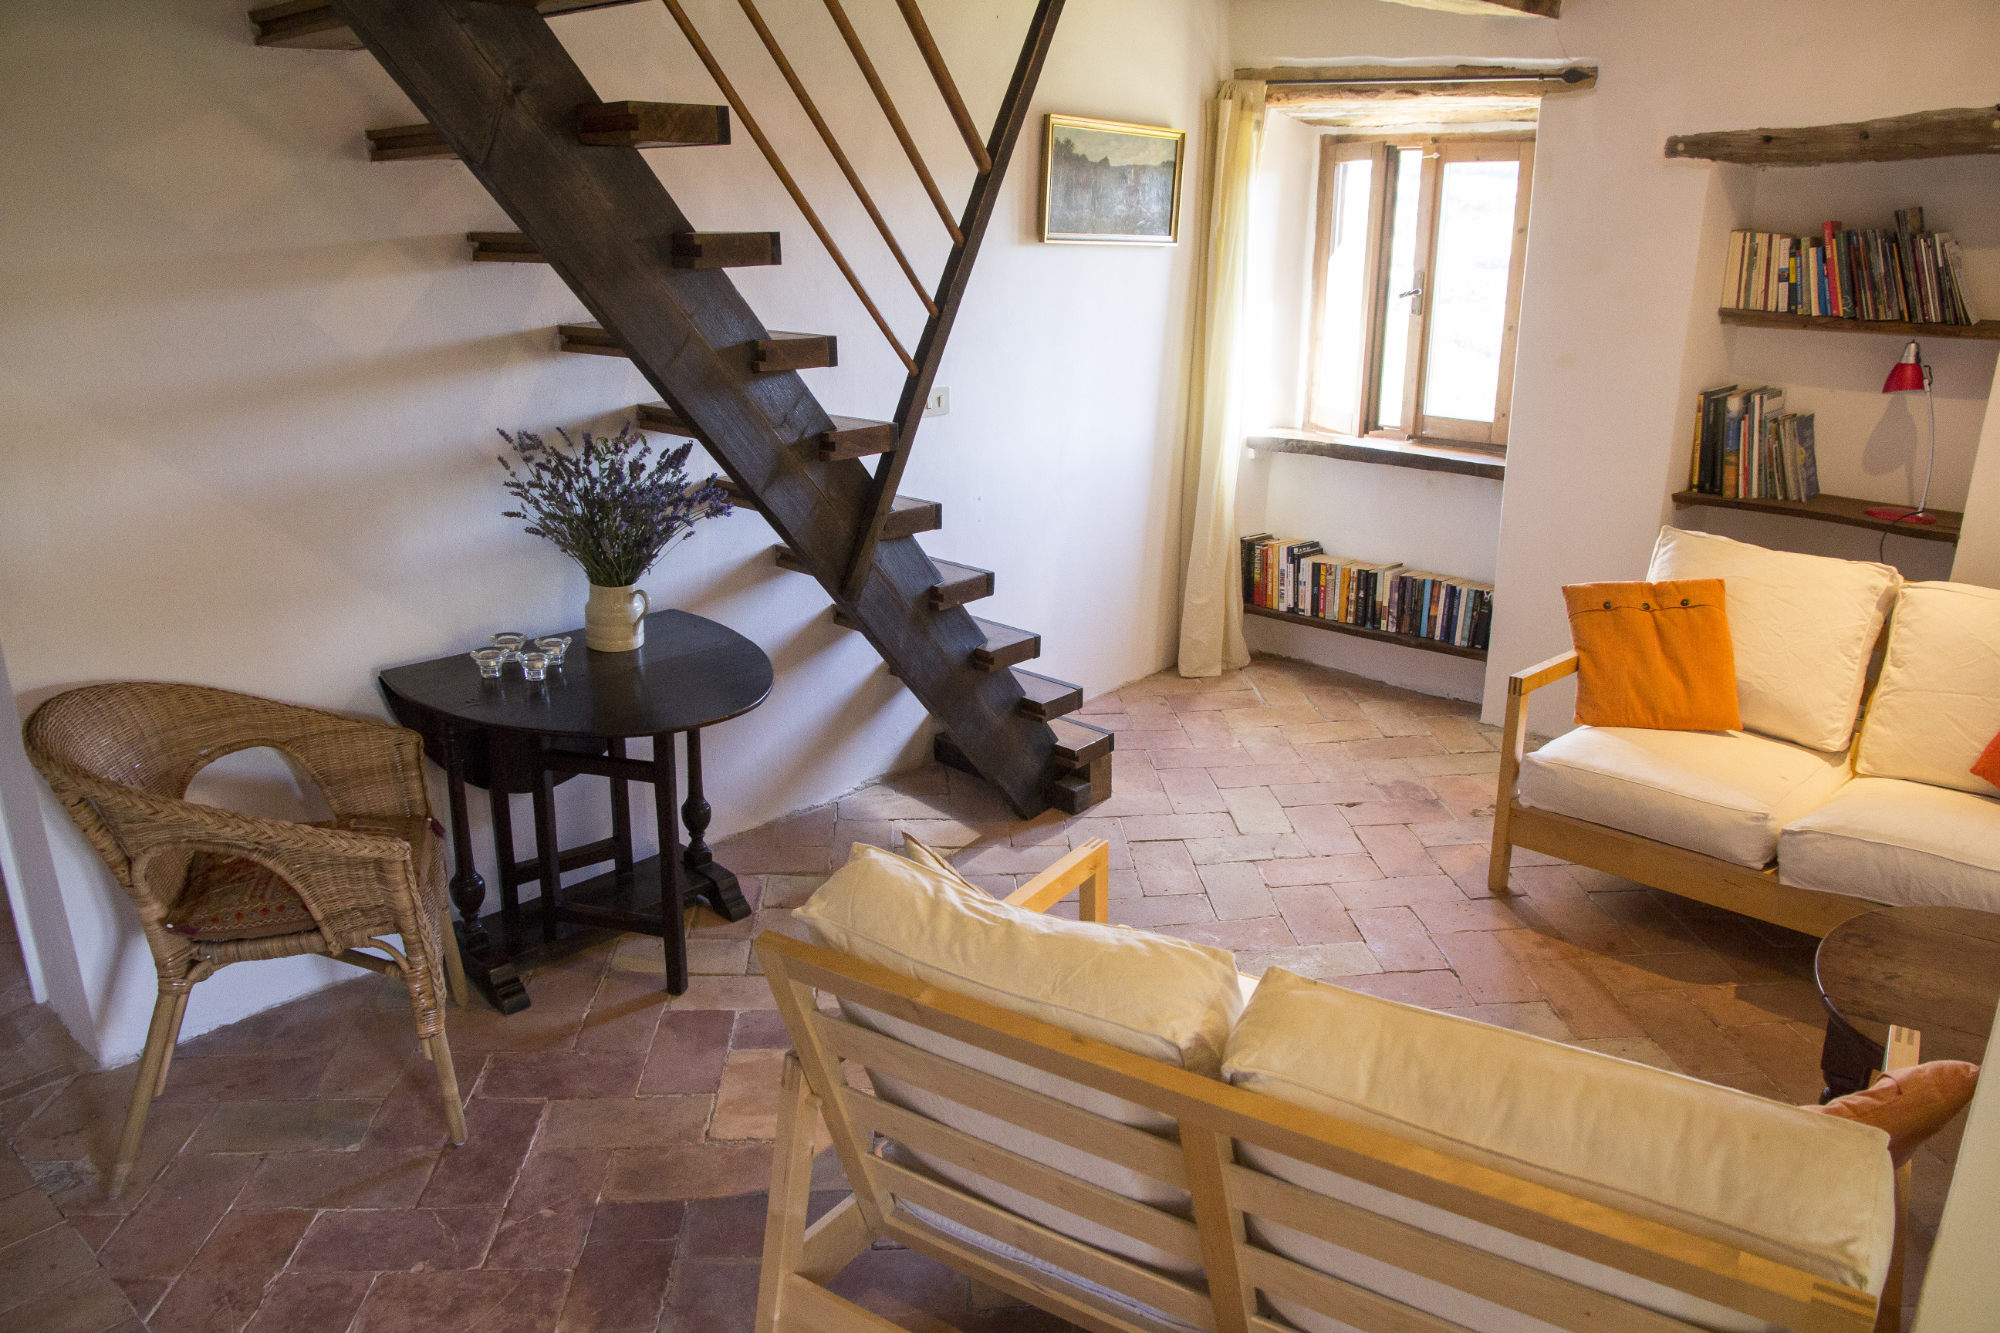 palomba living room and stairs